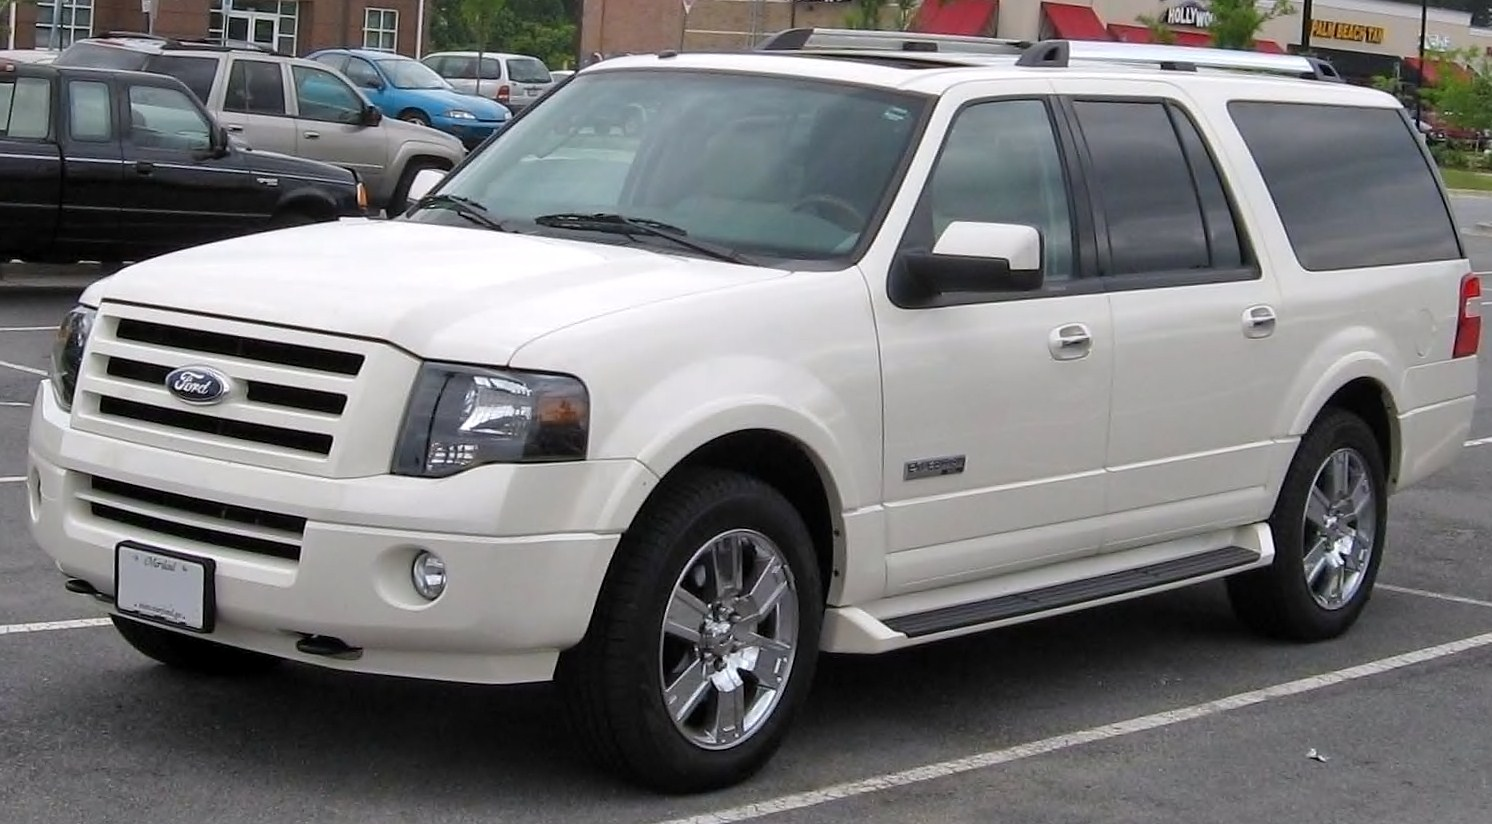 2007 ford expedition el image 18